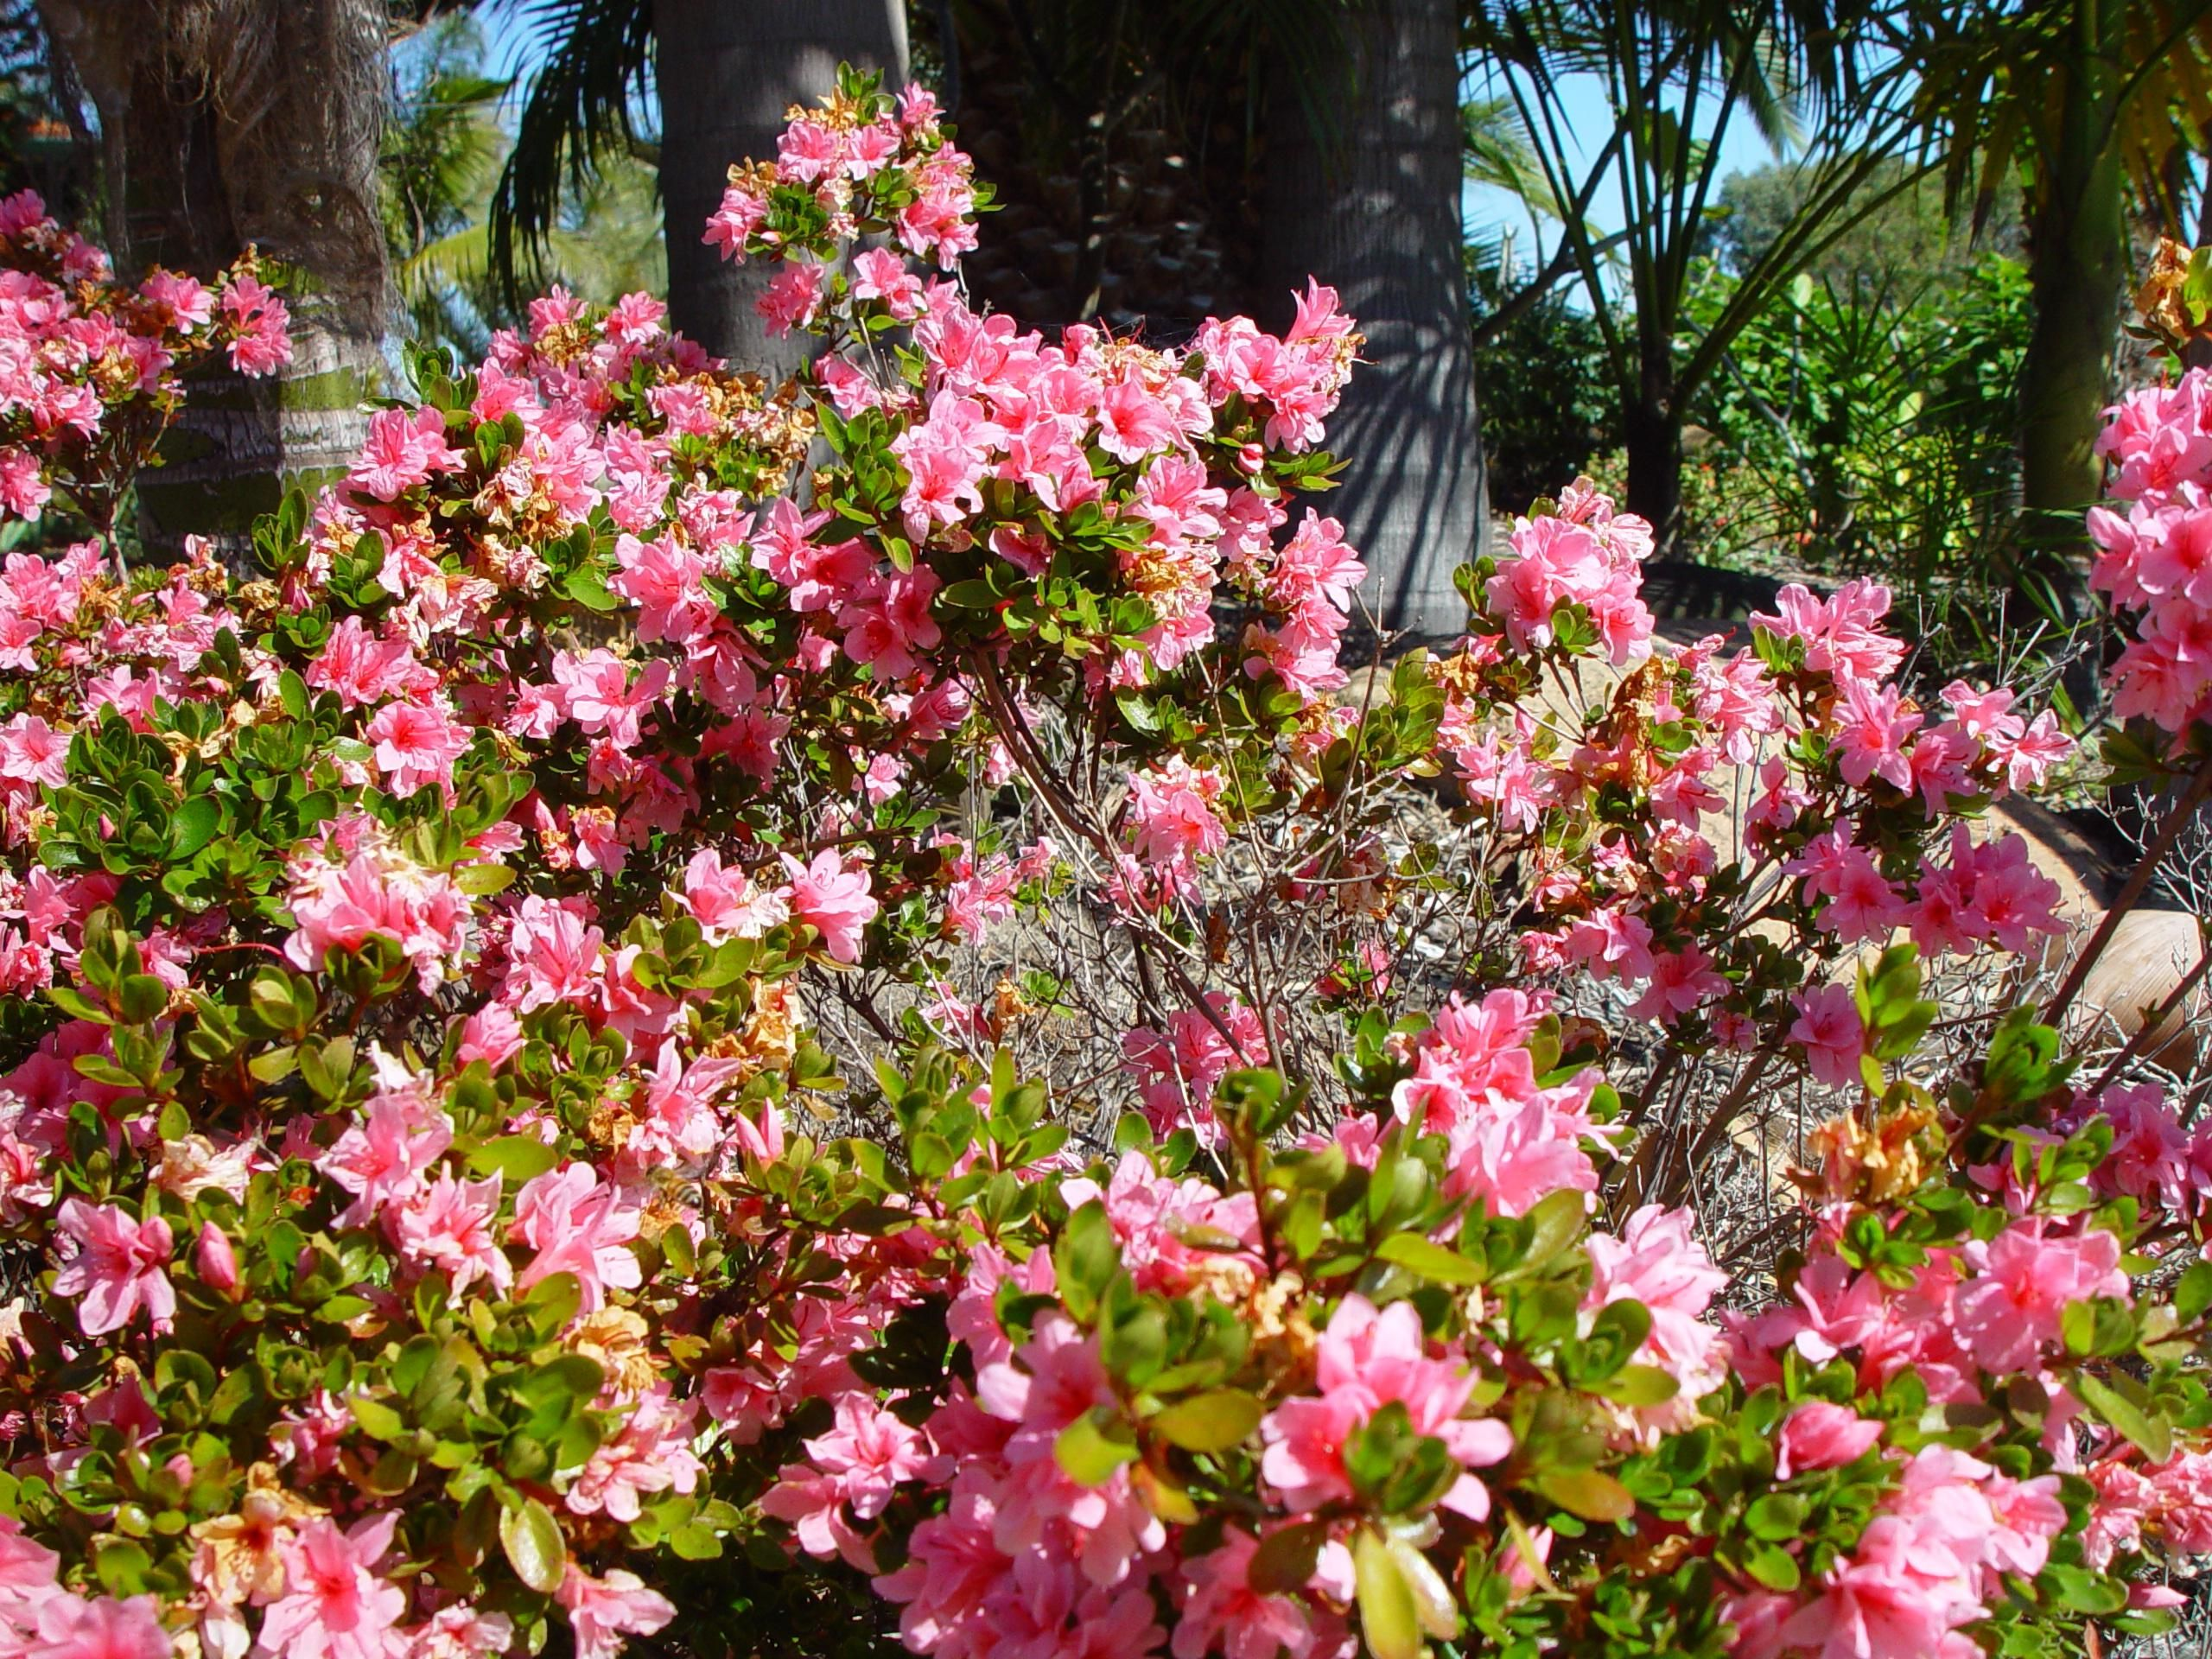 File:Bush with pink flowers.jpg